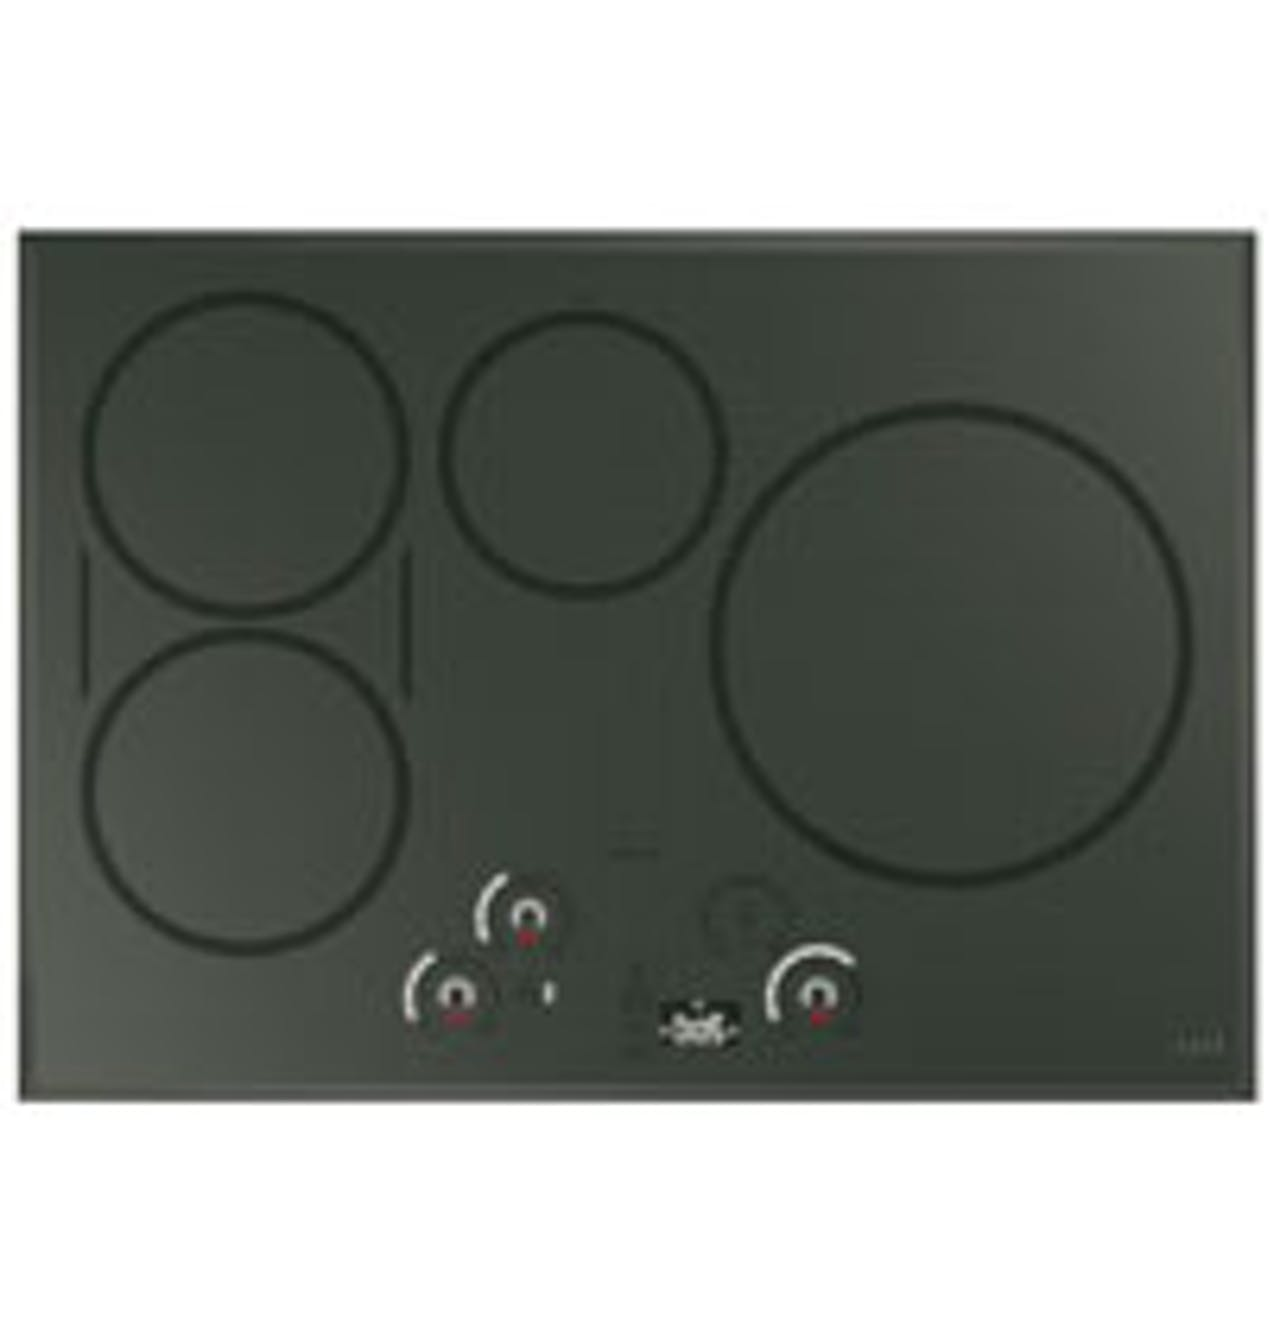 Smart Induction Cooktops